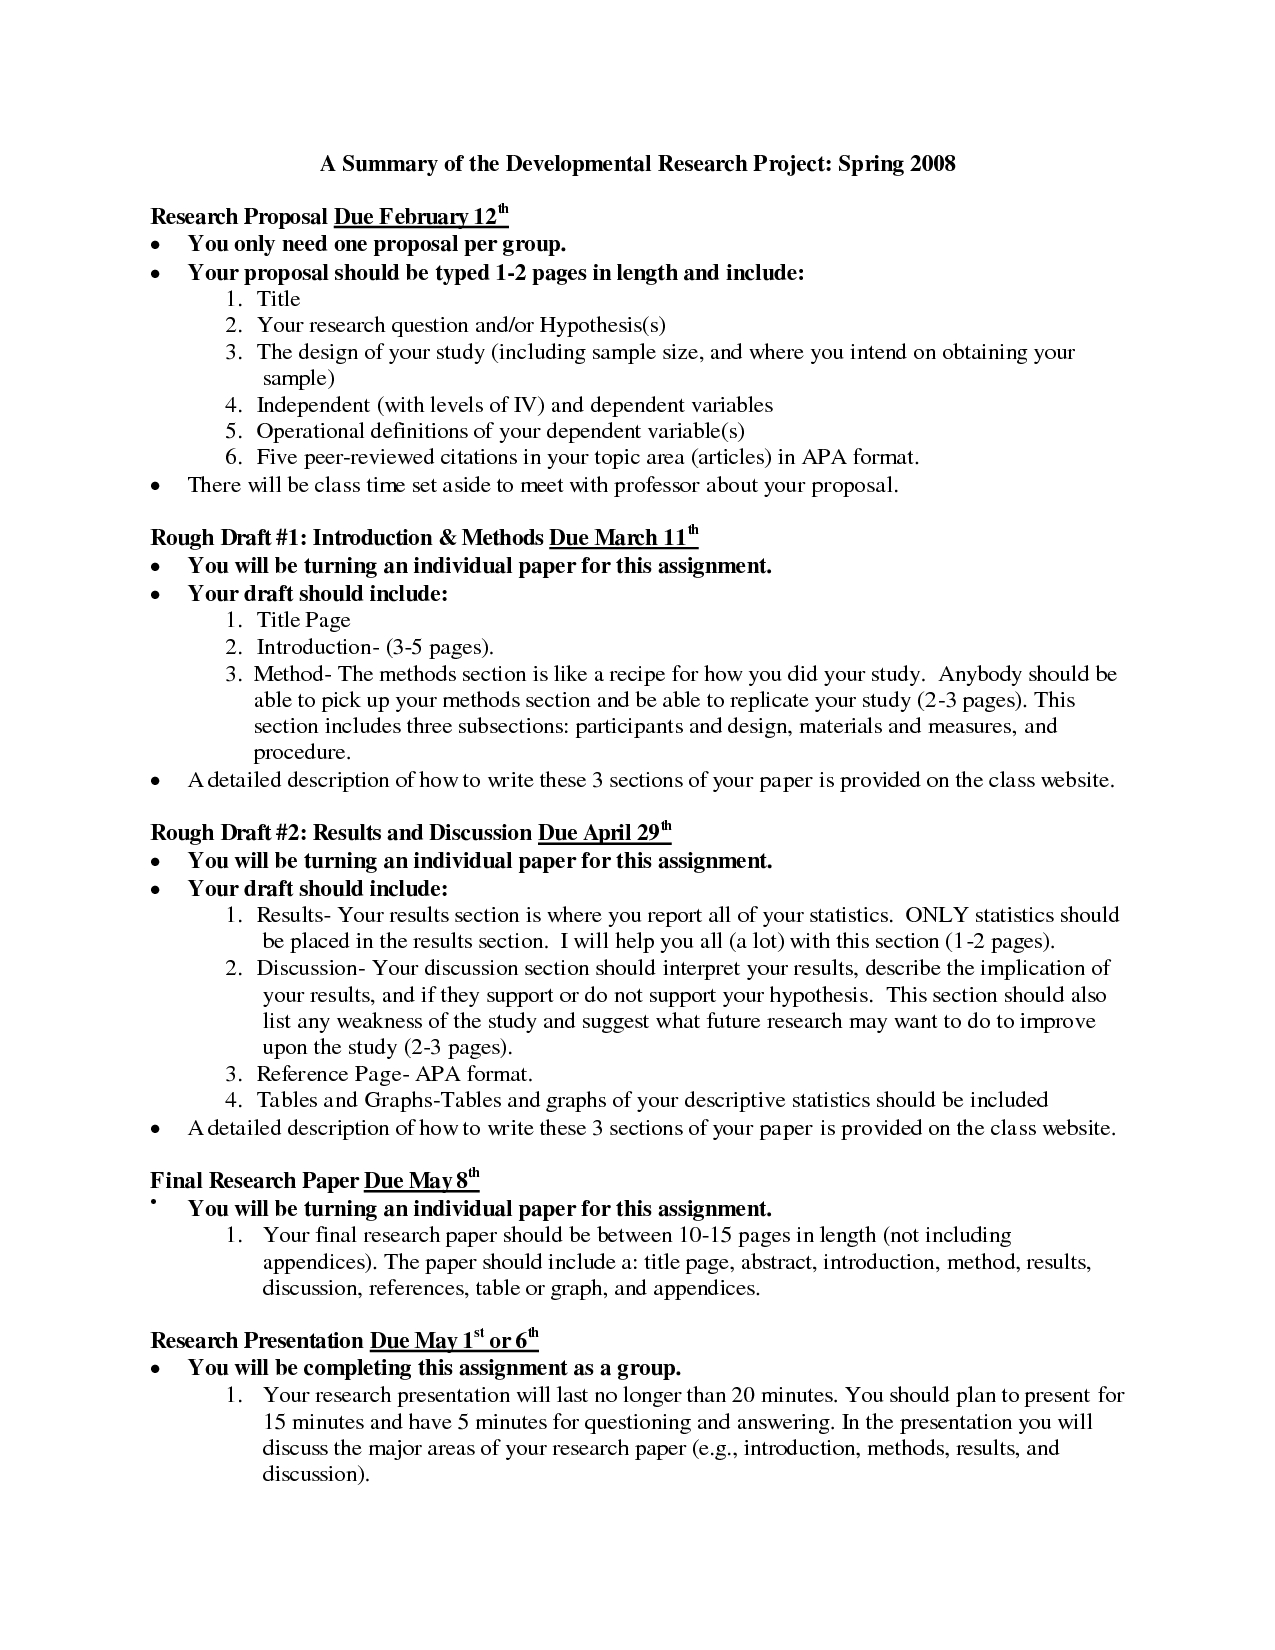 009 Good Topics For Researchs Psychology Undergraduate Resume Unique Sample Of Awesome Research Papers Interesting Paper History Topic College English High School Students In The Philippines Full